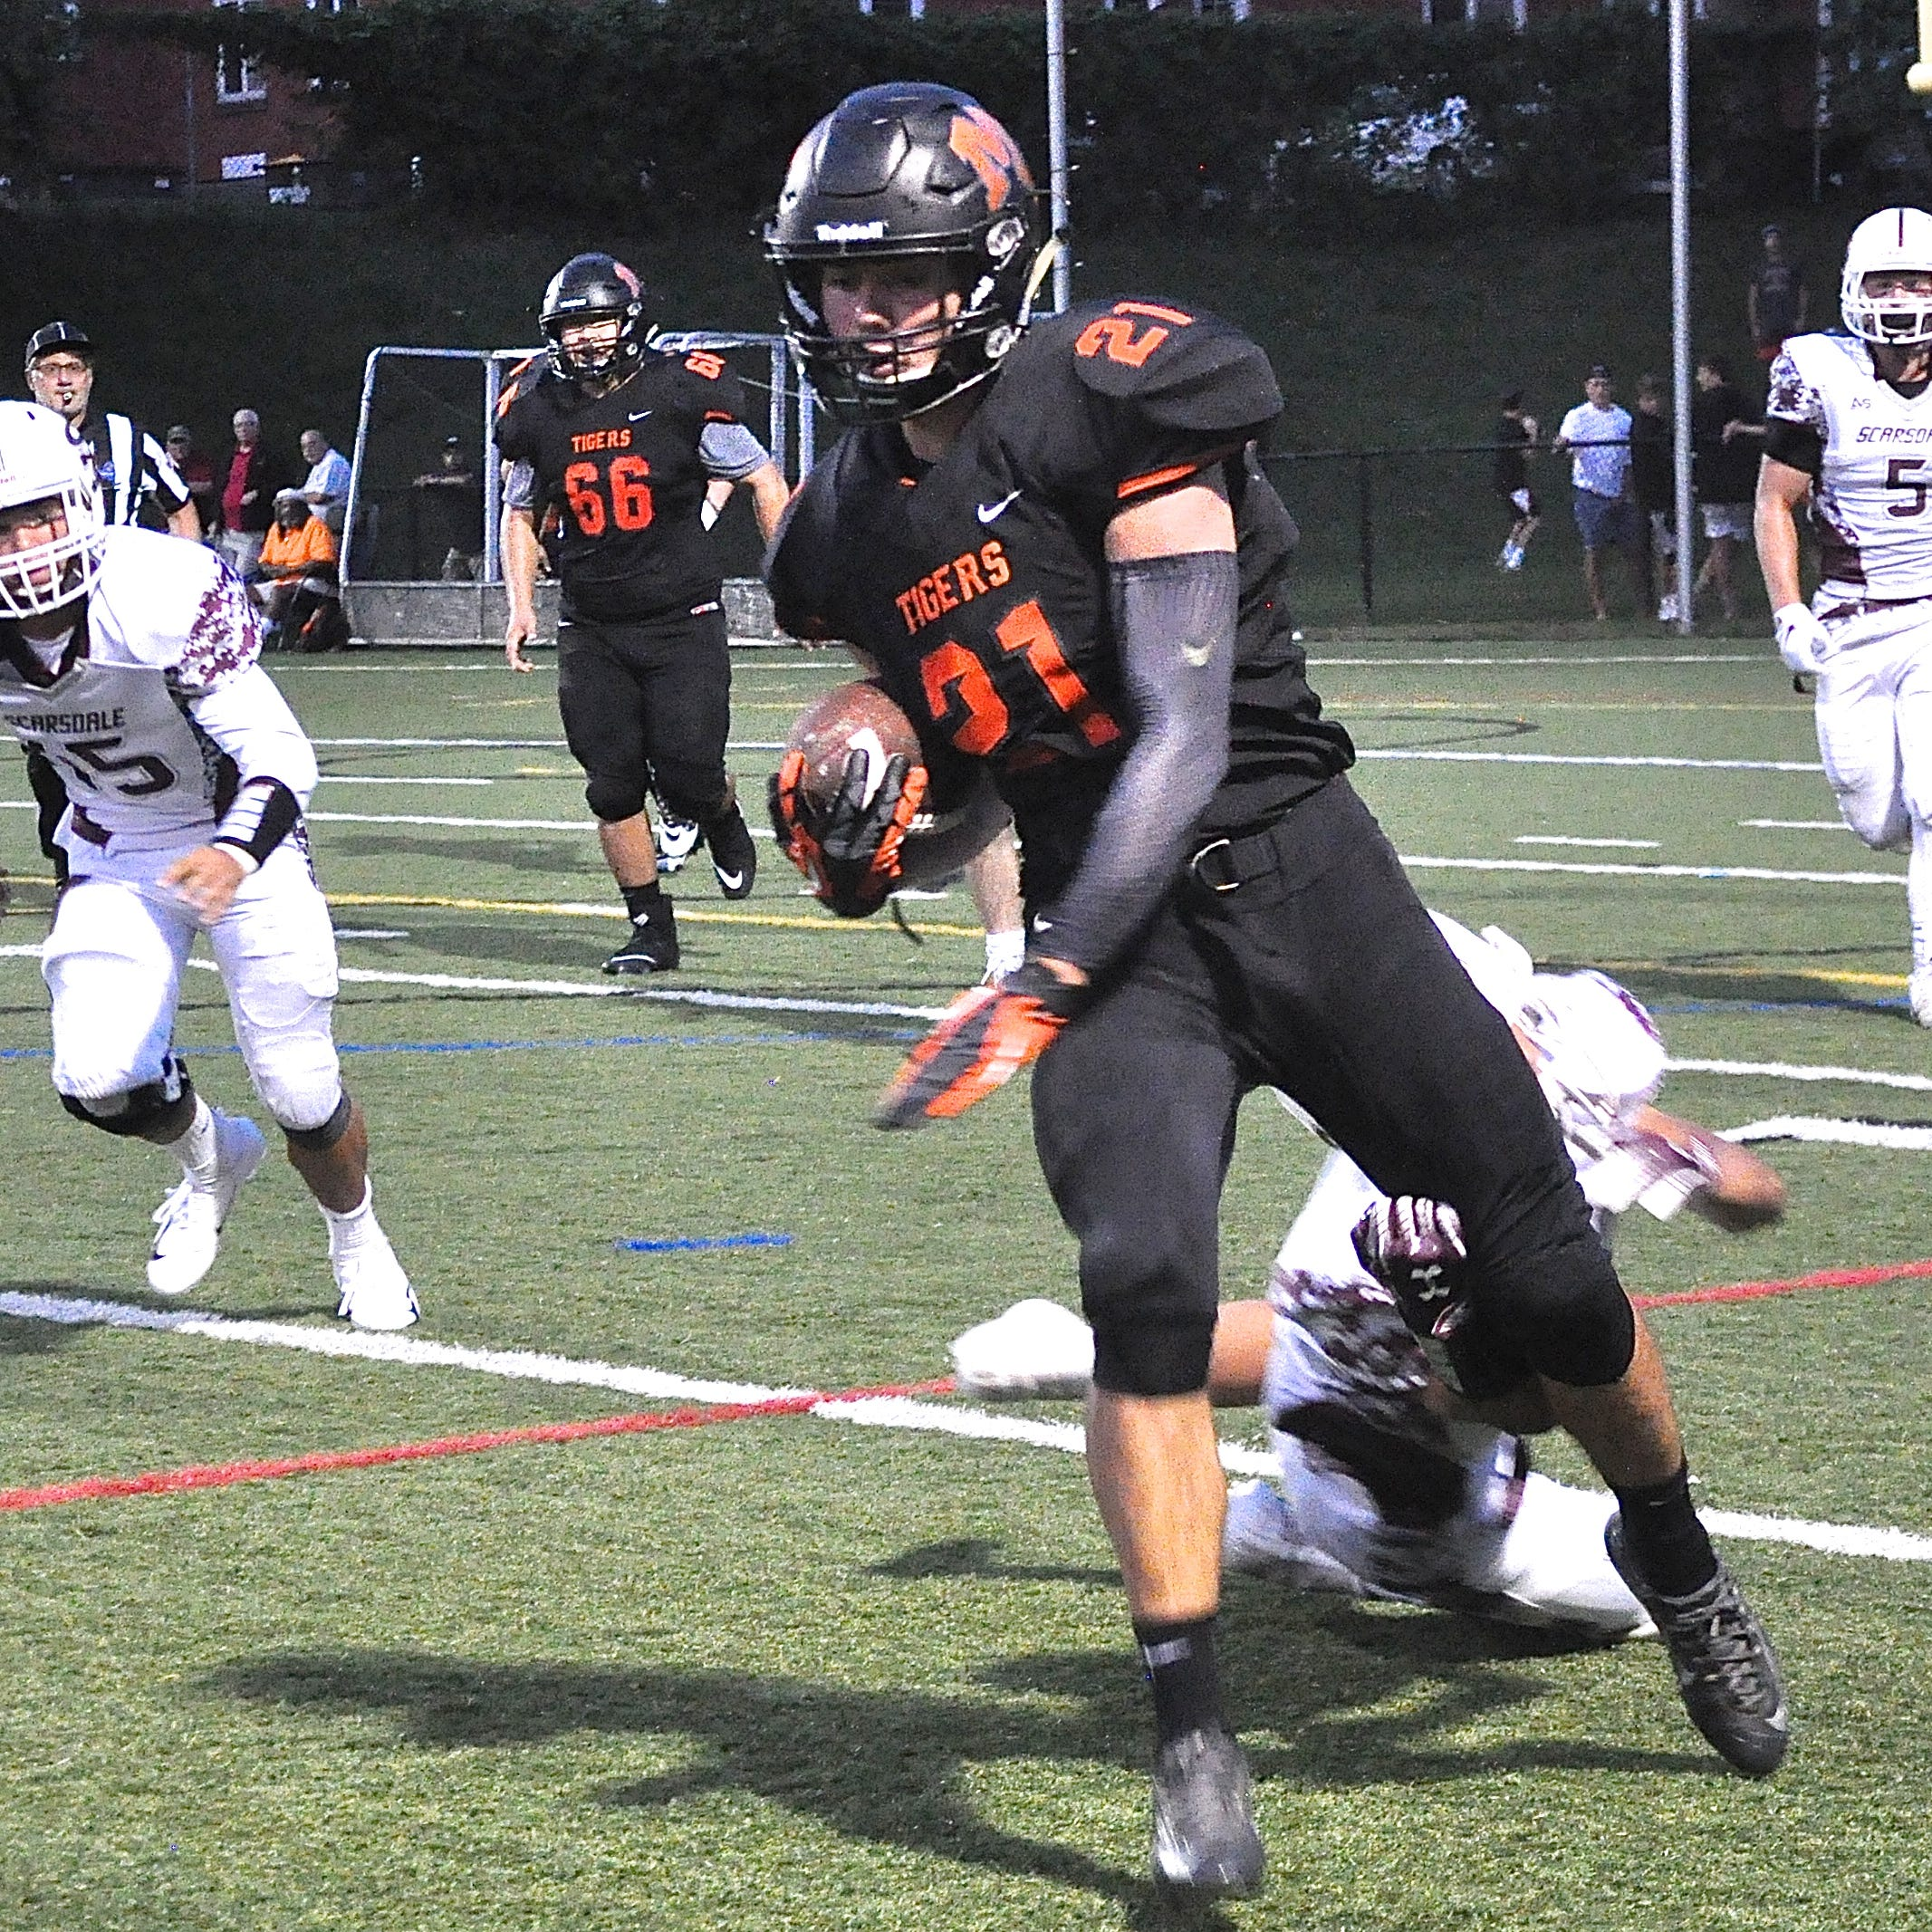 Football: Big day against rival gets Mamaroneck's Shane Smith Player of the Week honors